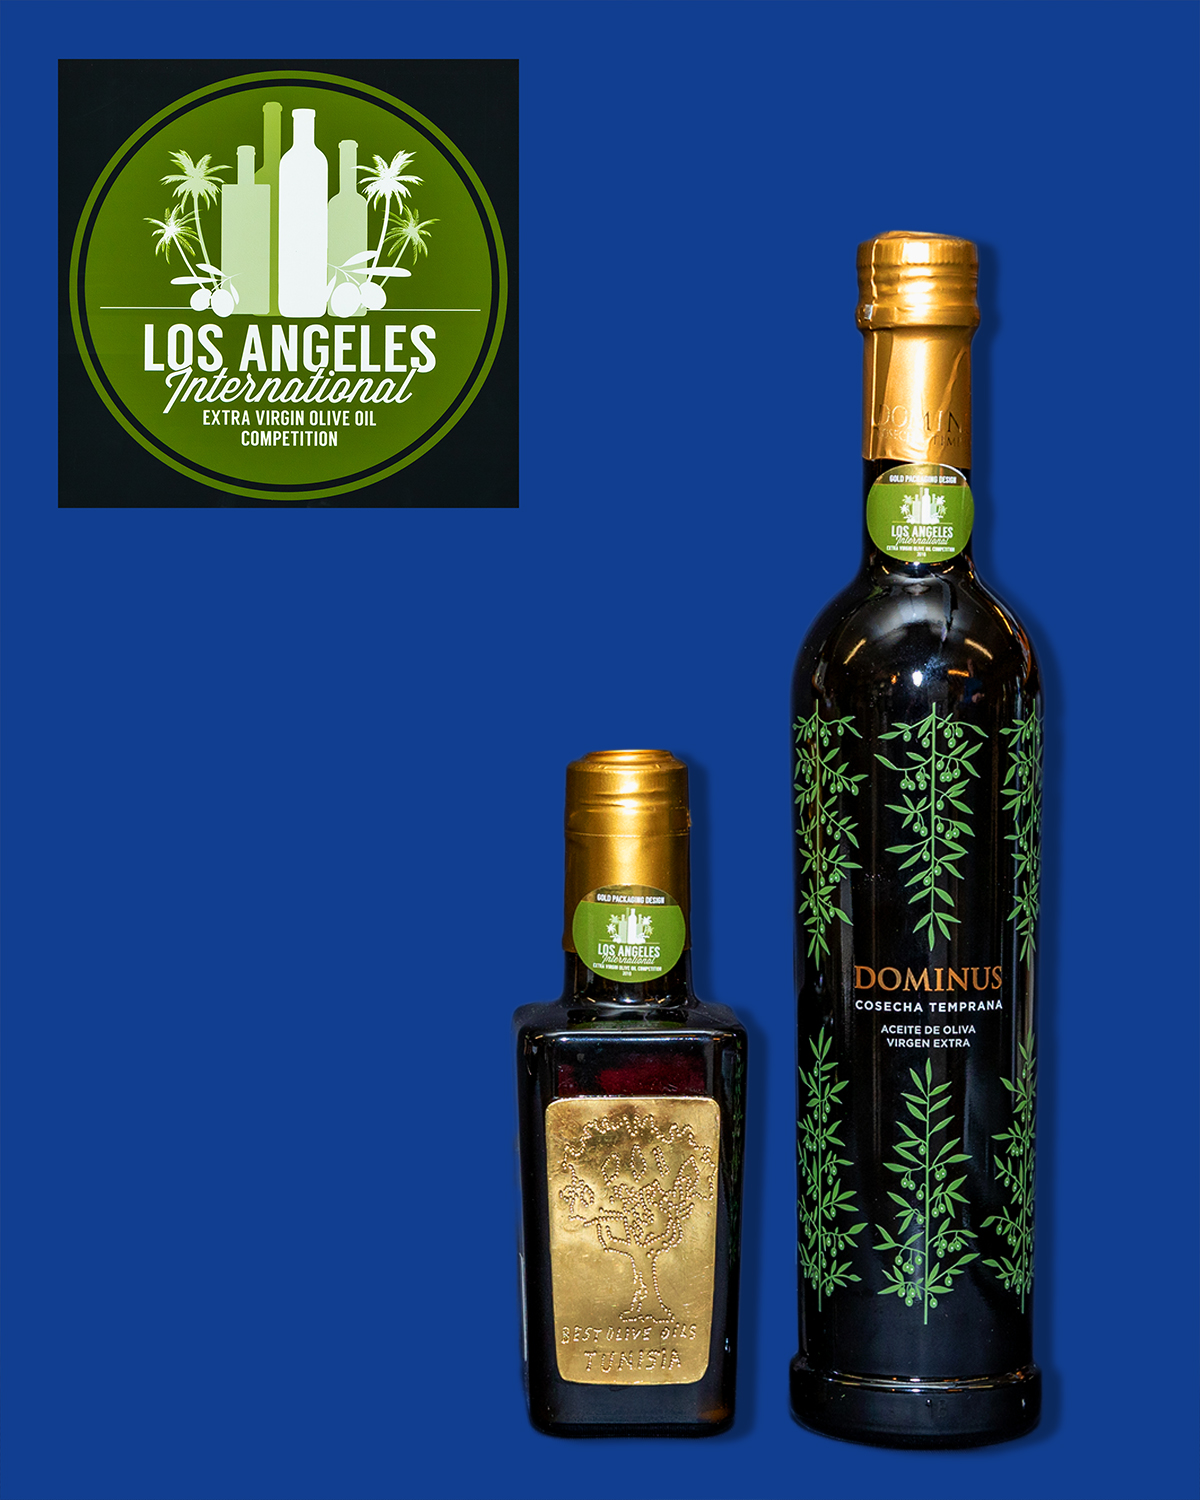 2019 LA International Olive Oil Gold Packaging Design